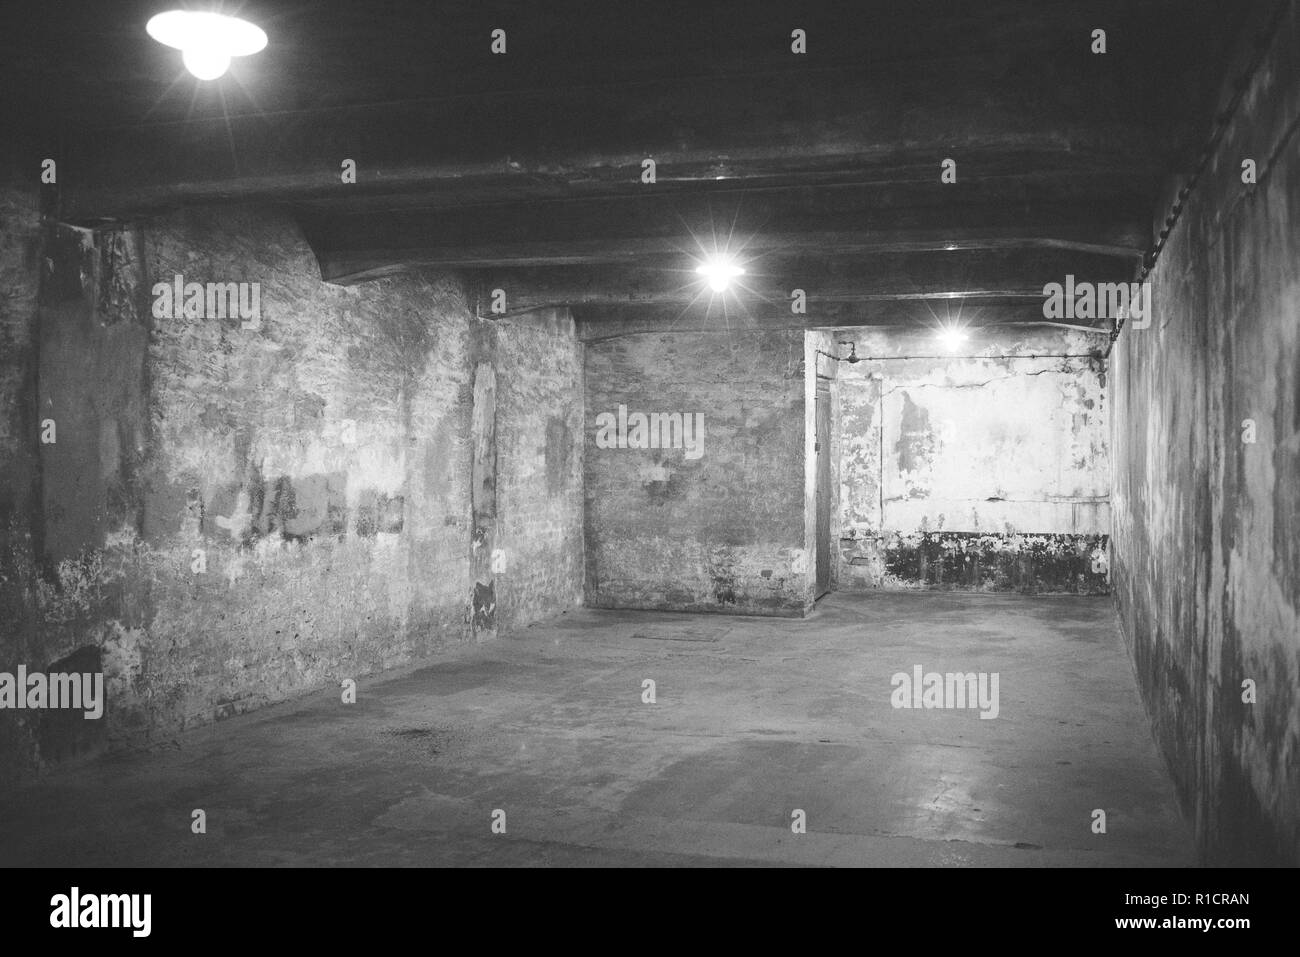 Auschwitz Nazi concentration and extermination camp. Gas chamber. Auschwitz, German-occupied, Poland, Europe - Stock Image